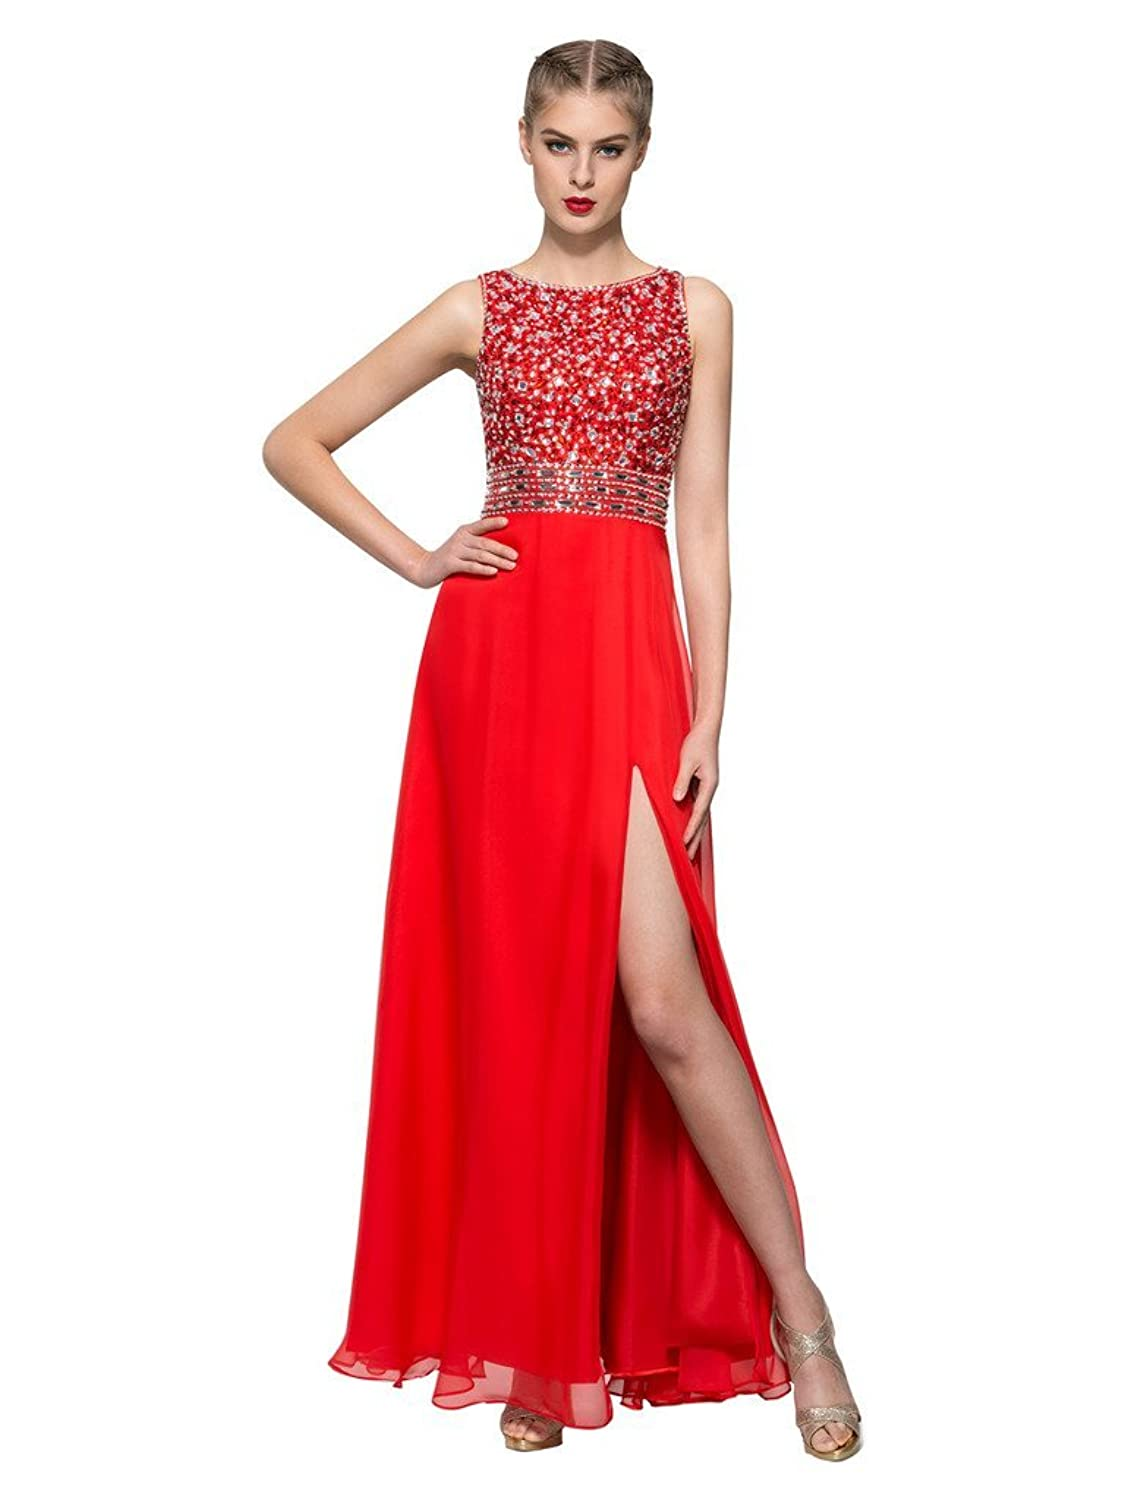 CLOCOLOR Women's Long Beaded Rhinestons Backless Prom Dresses with High Splits Evening Gowns for Ladies